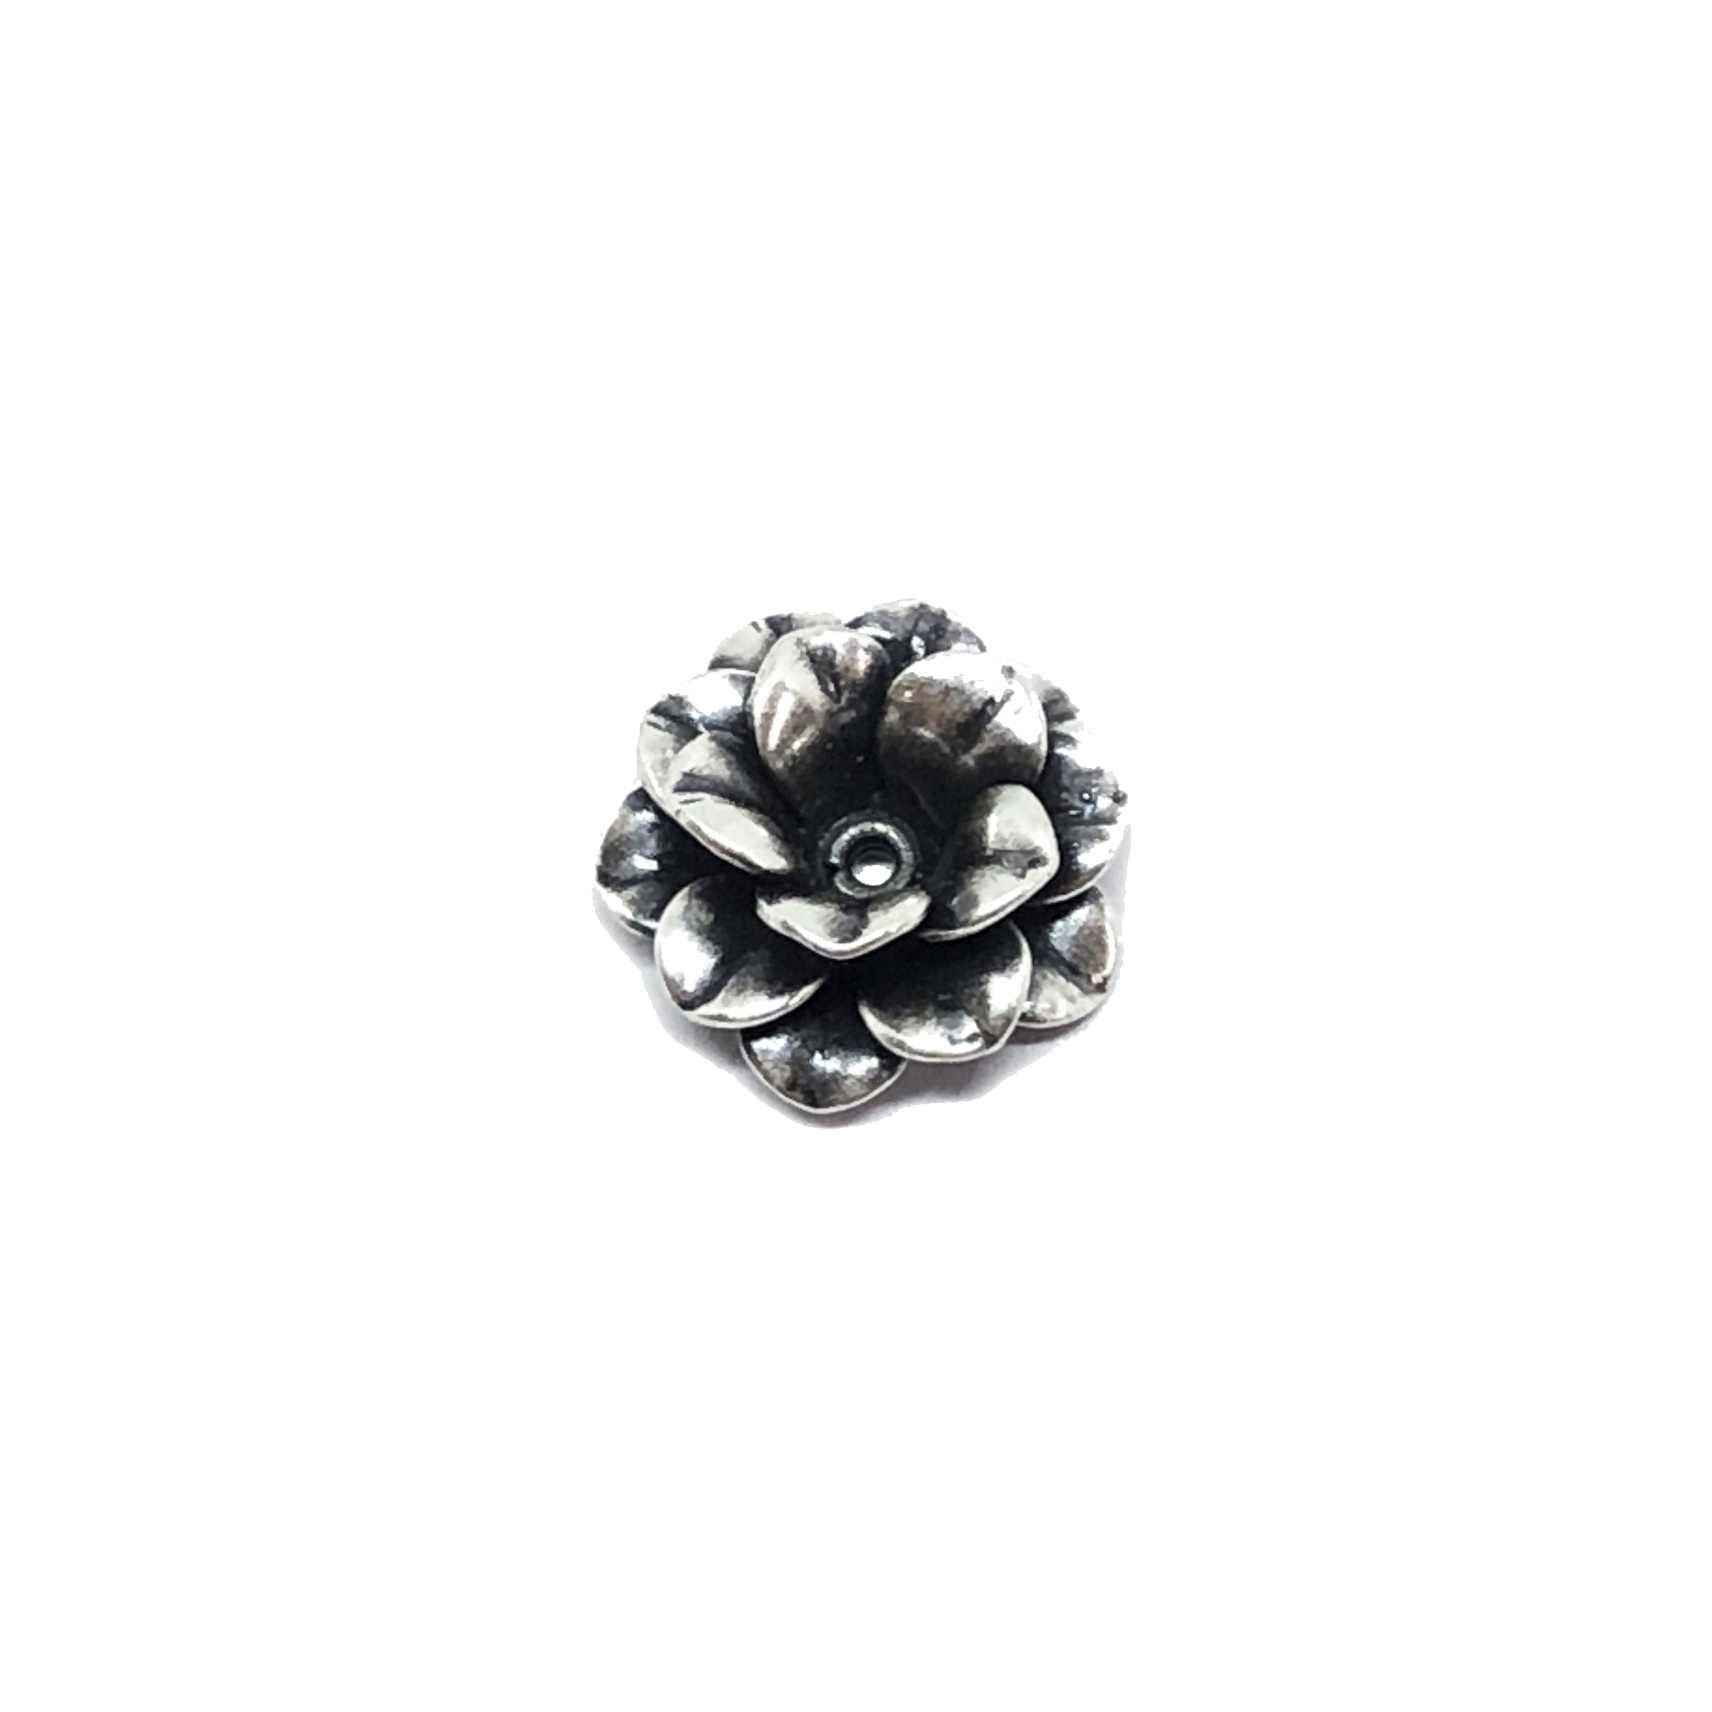 small tea rose flower, riveted flower, silverplate flowers, silverware silverplate finish, B'sue Boutiques, nickel free, US made, vintage supplies, jewelry making, jewelry supplies, layered flower, beading supplies, antique silver, silverplate, 13mm,02235